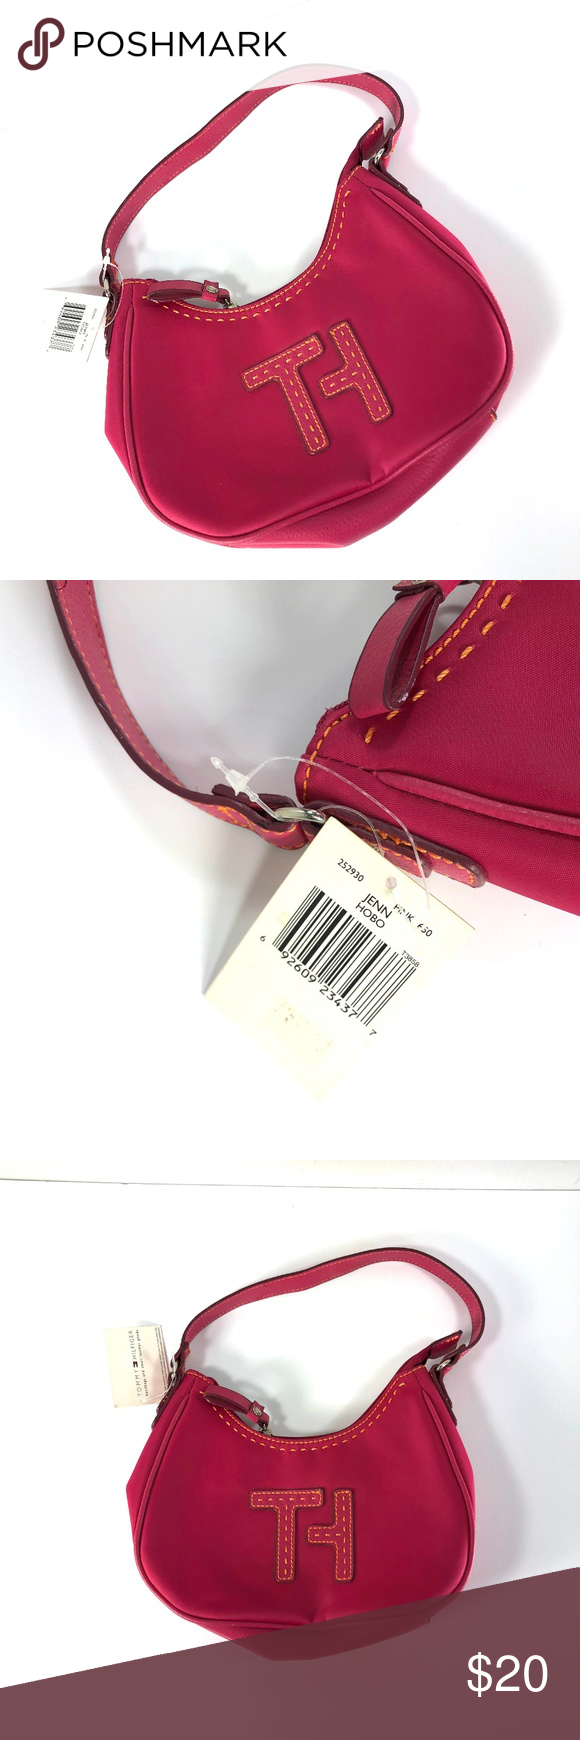 Tommy Hilfiger Girls Pink Mini Hobo Purse Pre Loved But Still New With Tags Tommy Hilfiger Girls Jenn Tommy Hilfiger Girl Hobo Purse Tommy Hilfiger